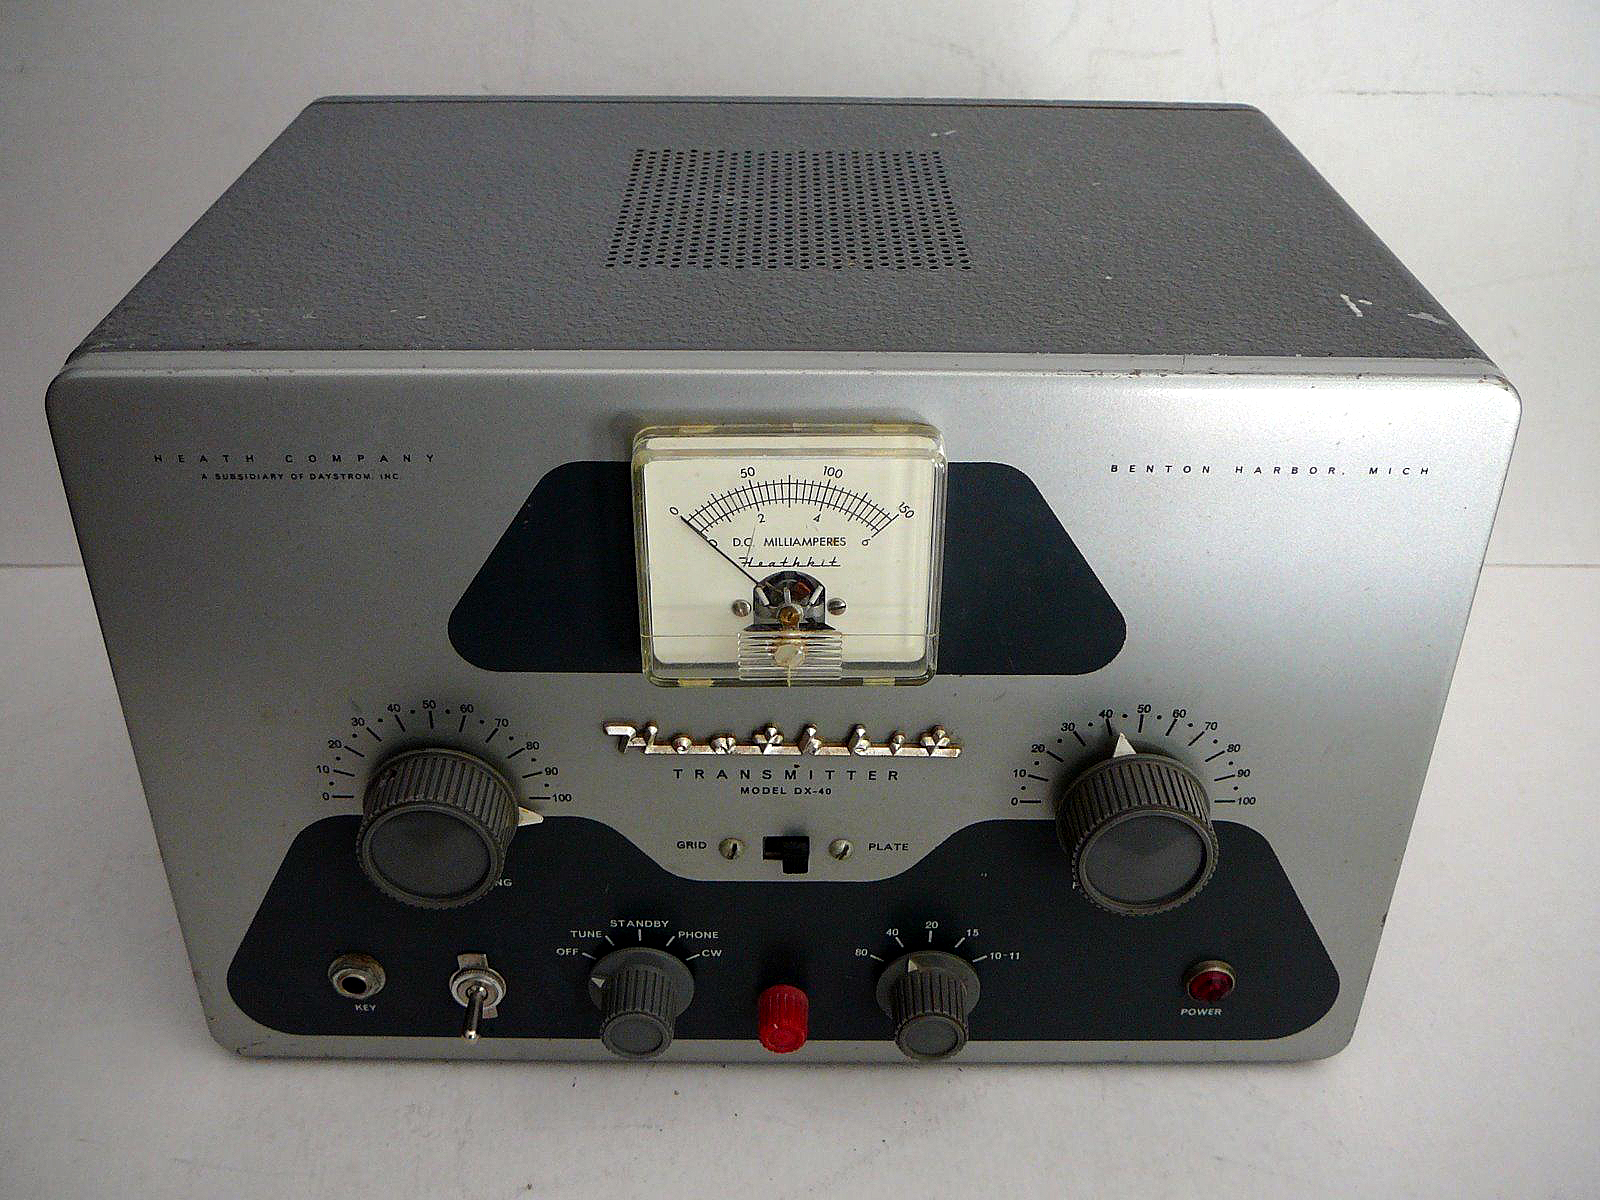 Ham Radio And Vintage Short Wave Radios At The Museum Of Yesterday Transistor Oscillator Circuit Likewise One Tube Cw Transmitter As Well Heathkit Vf 1 Was A Popular Companion Piece To Heathkits Novice Class Crystal Controlled Dx Series Transmitters Unit Employs Single